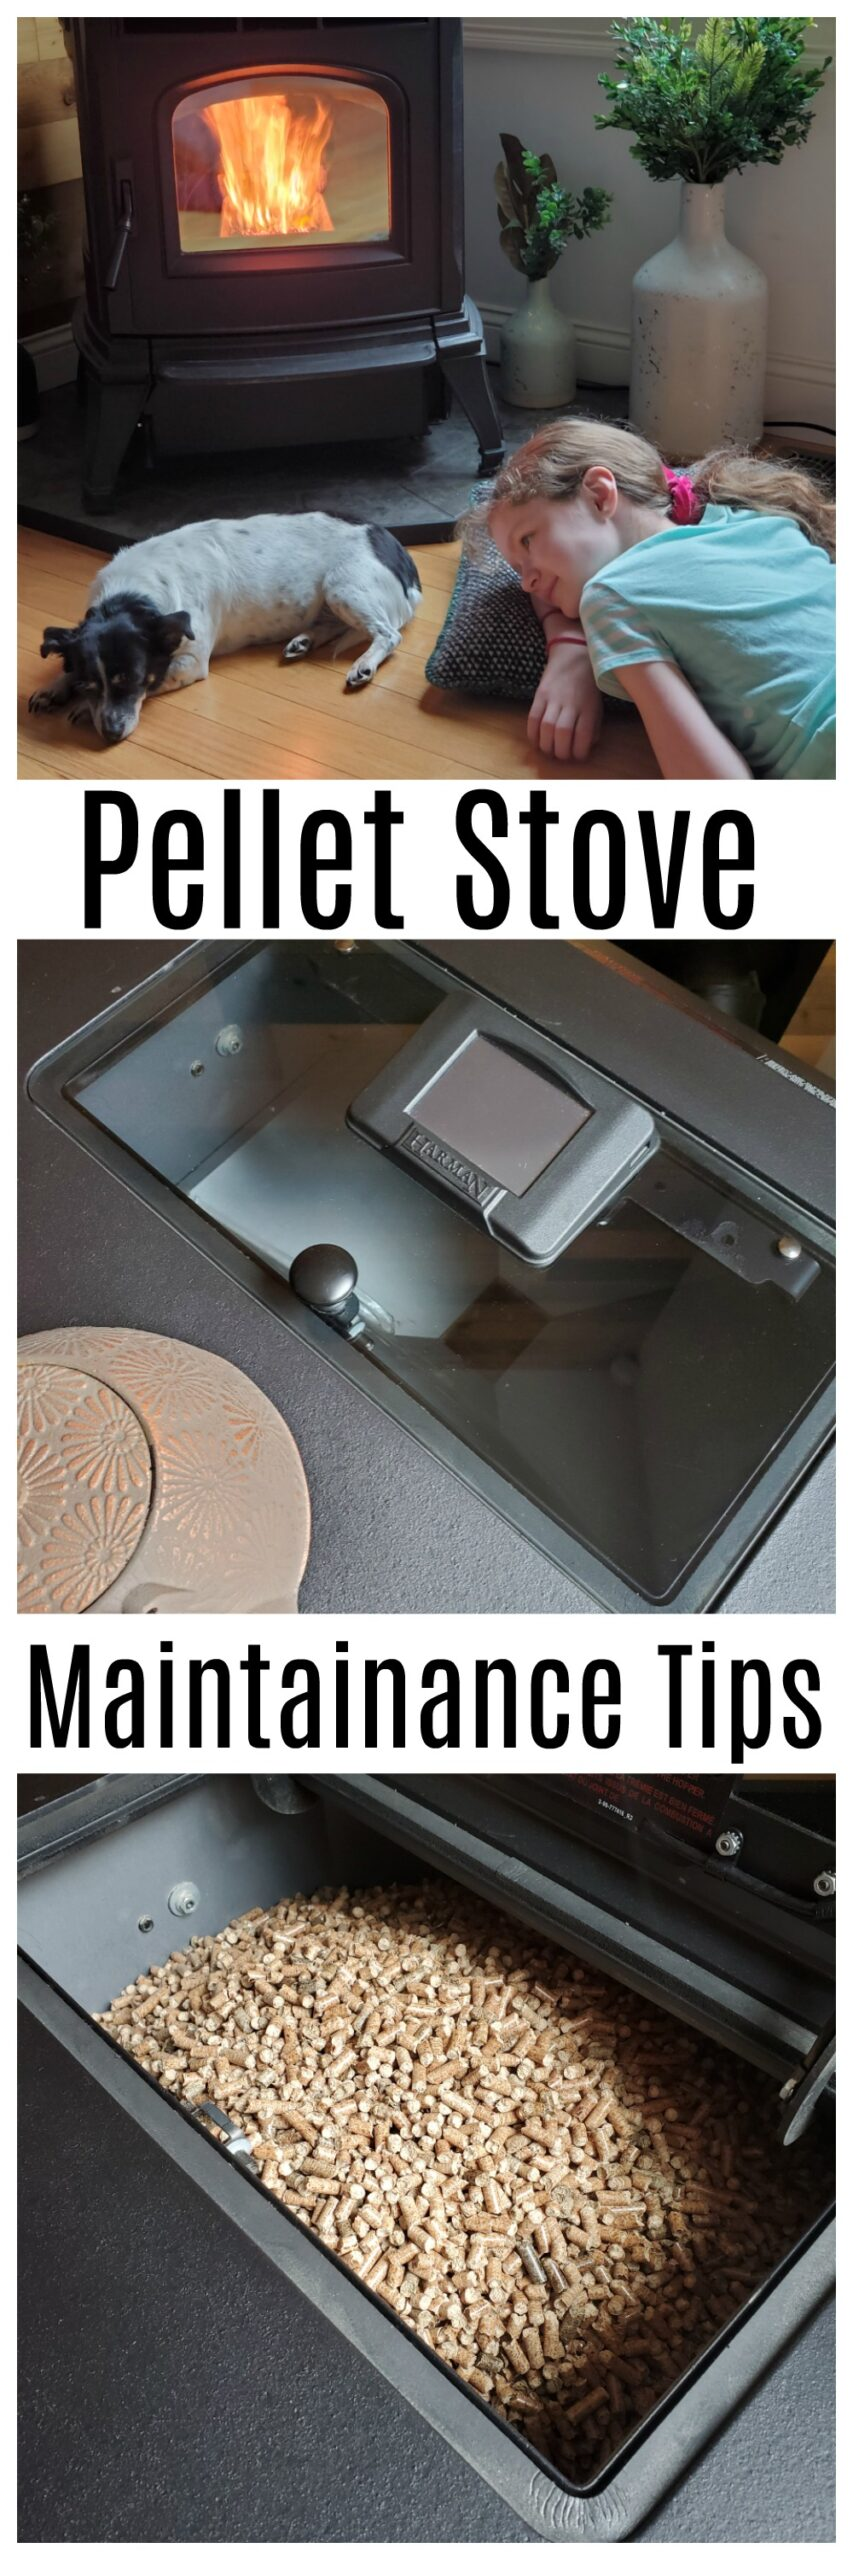 Pellet Stove Cleaning and Maintenance Tips